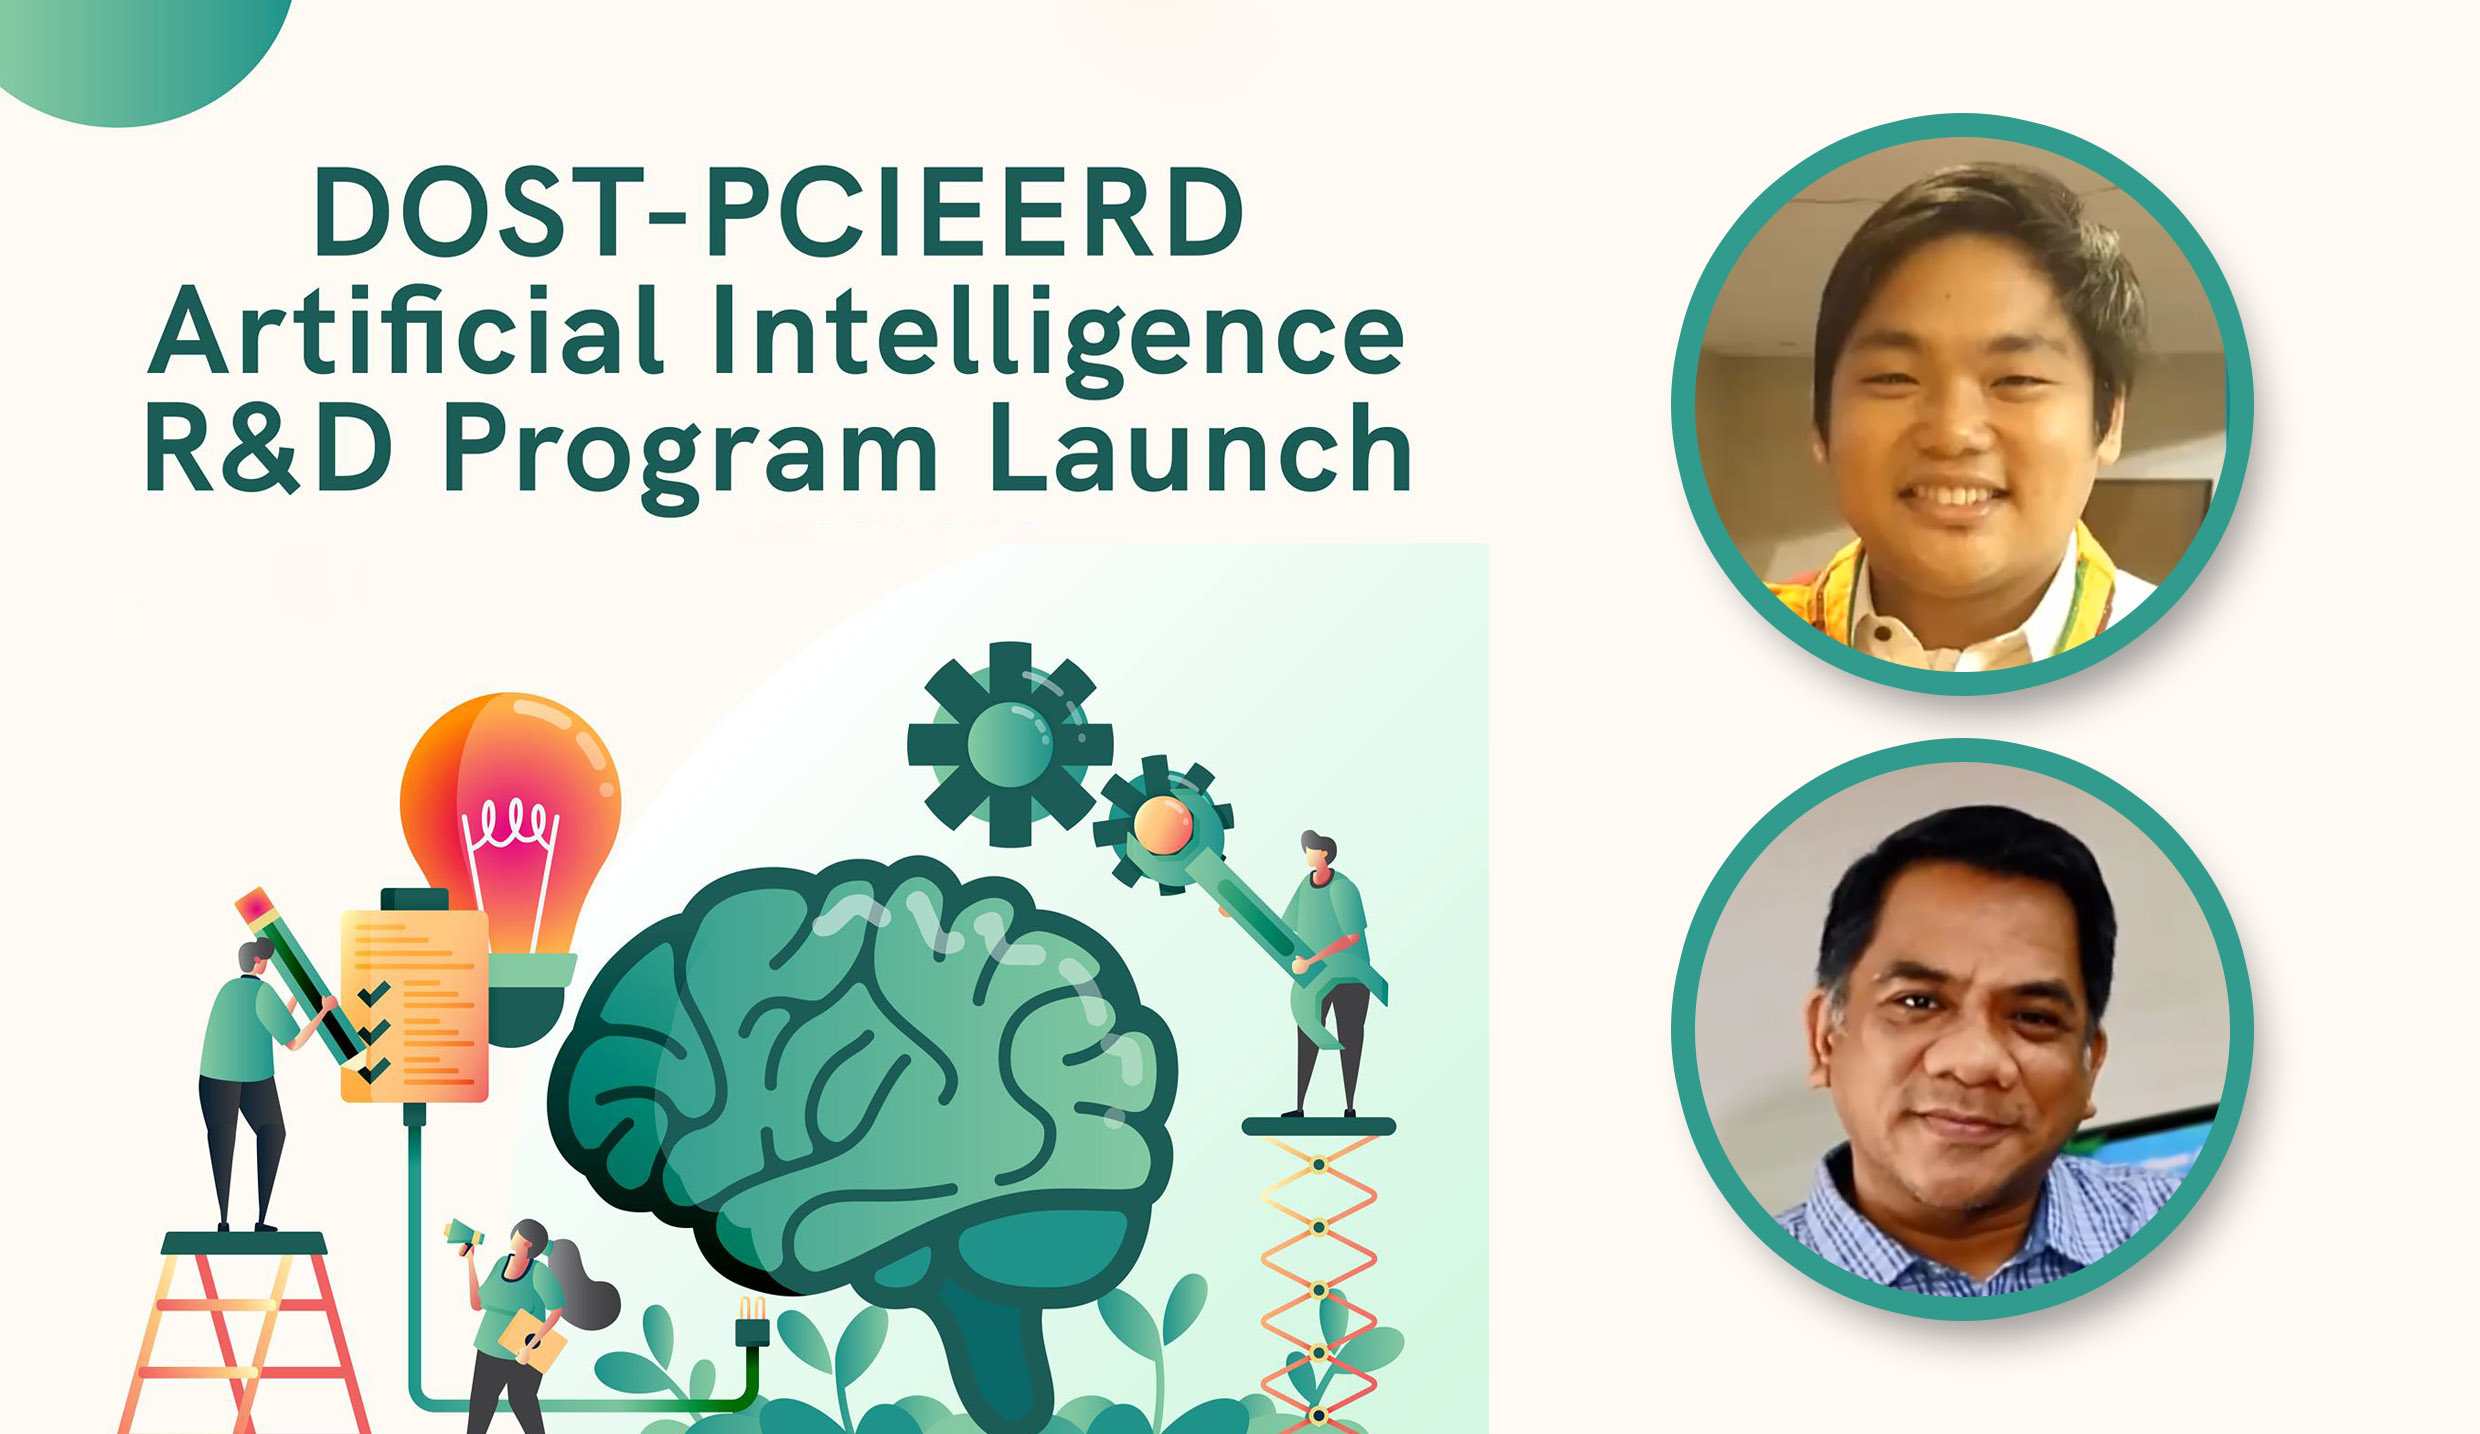 CEAT's software for faster spectroscopy analysis launched by DOST-PCIEERD